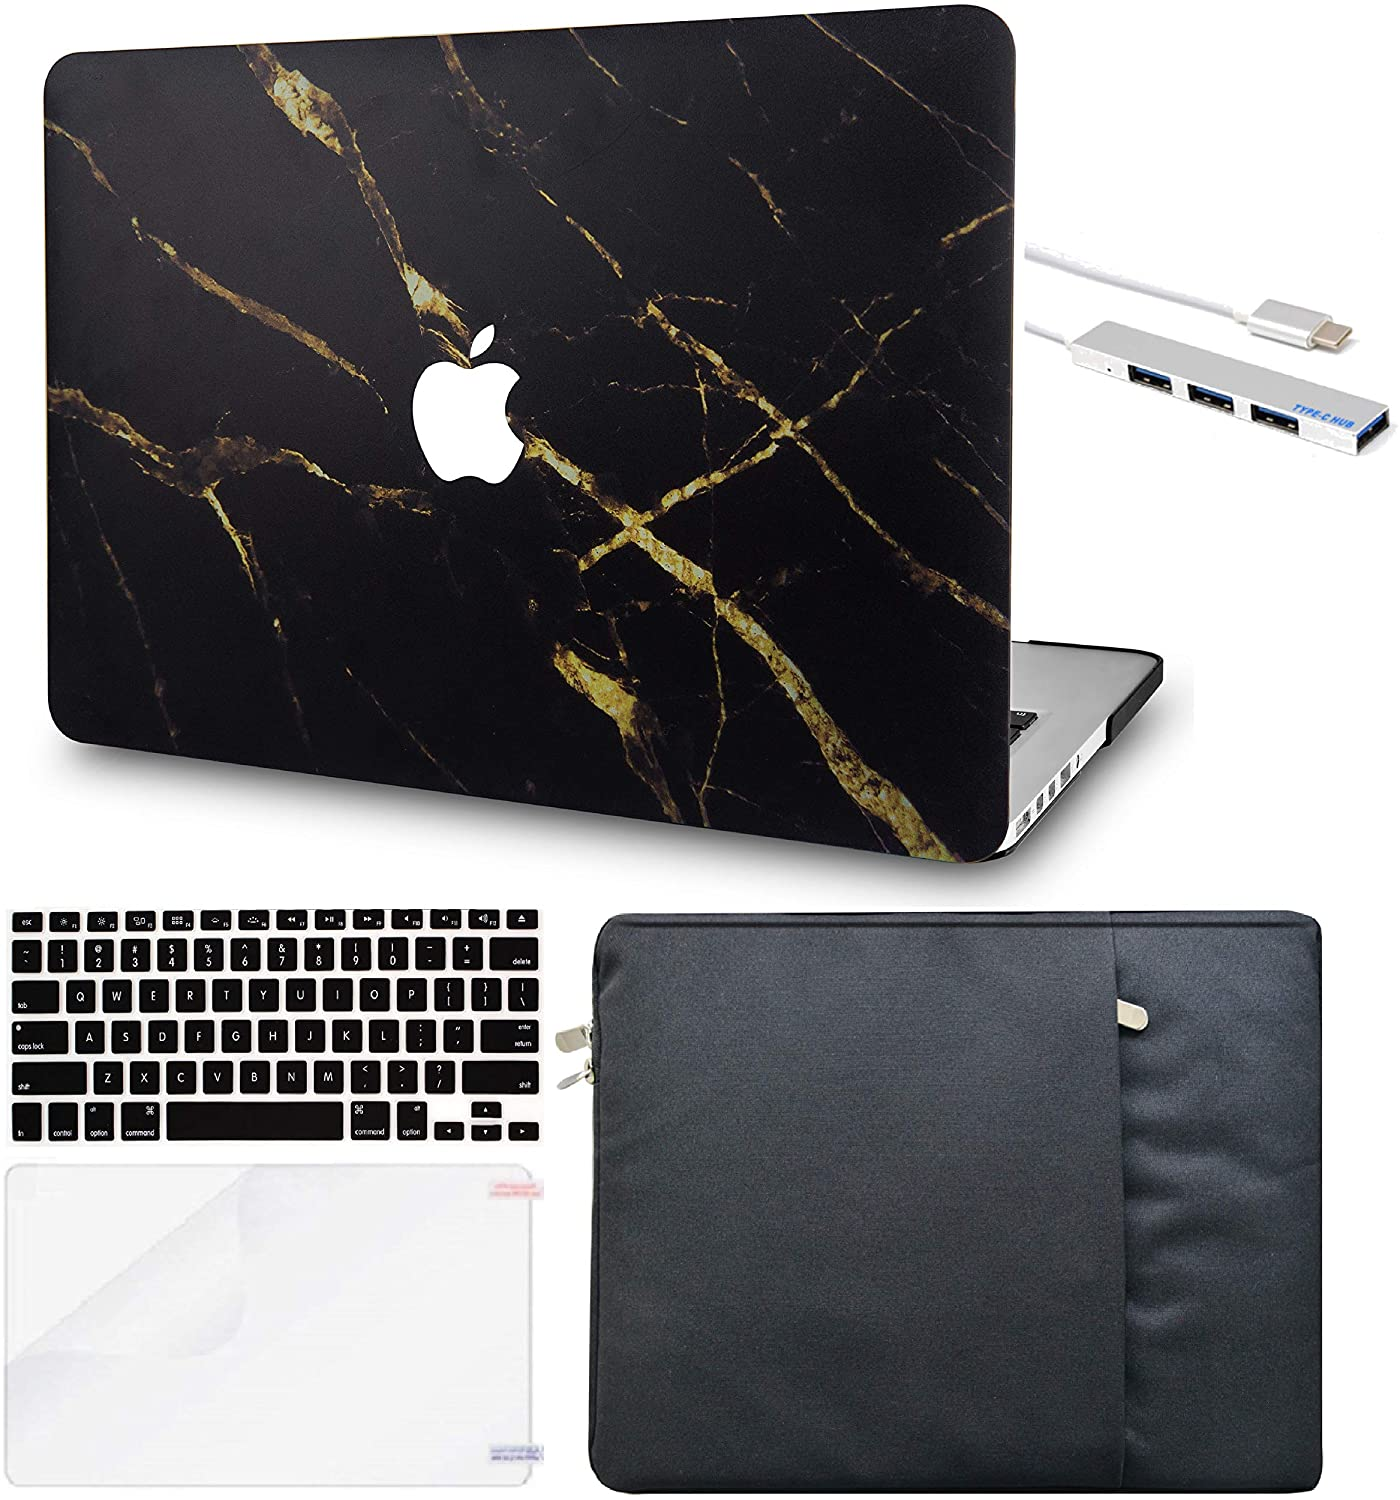 LuvCase 5in1 Laptop Case for MacBook Air 13 Inch (2020) A2179 Retina Display (Touch ID) Hard Shell Cover, Sleeve, USB Hub 3.0, Keyboard Cover&Screen Protector (Black Gold Marble)